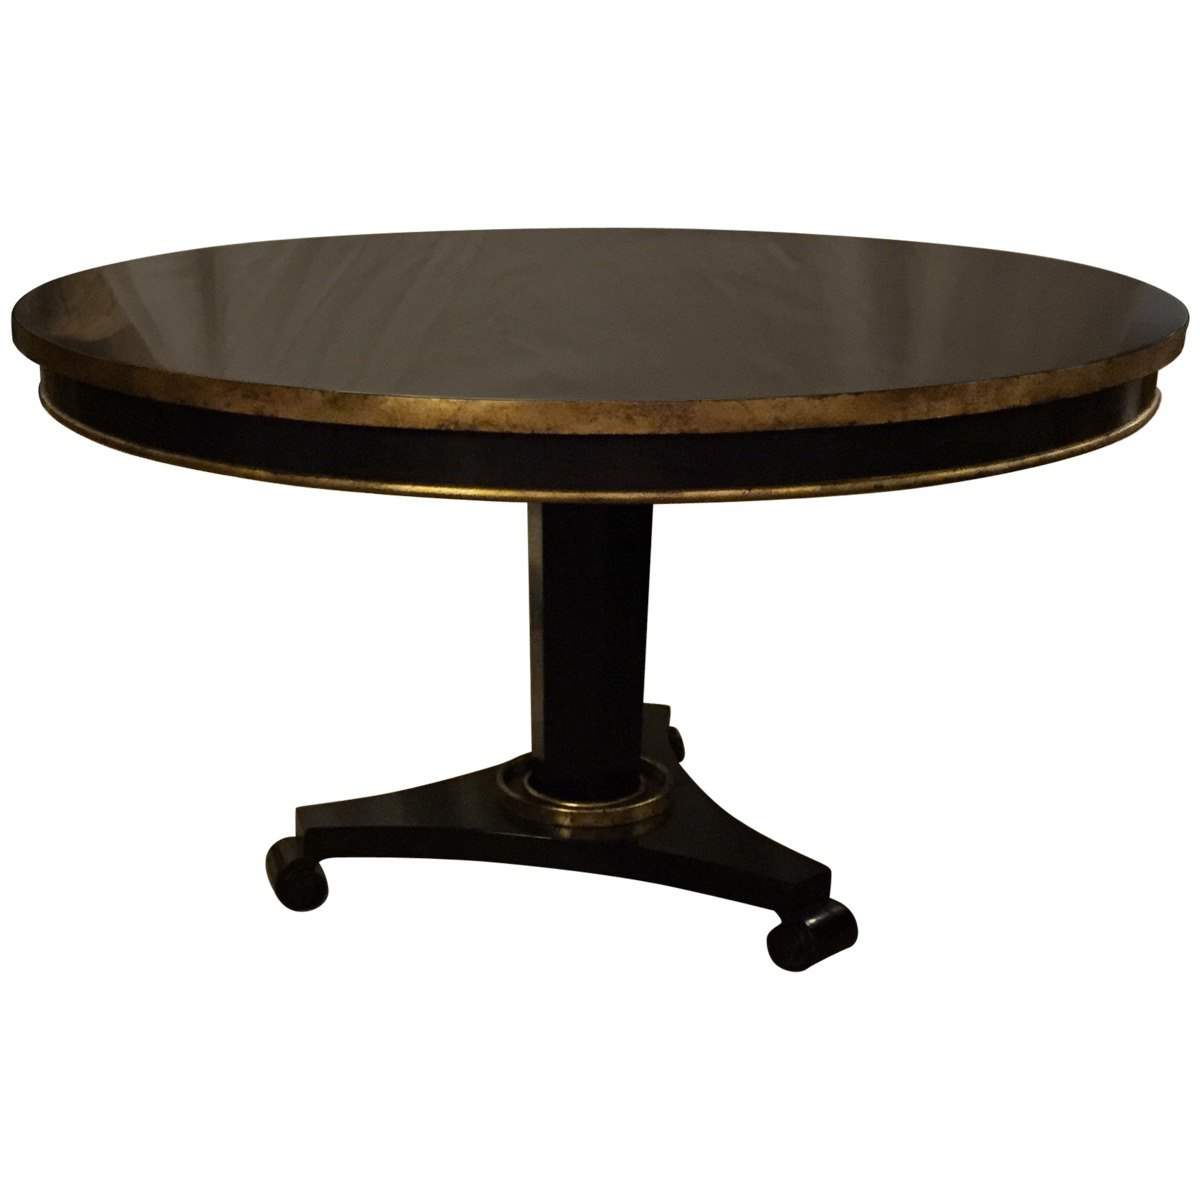 Round Pedestal Base Dining Table for Preferred Johnson Round Pedestal Dining Tables